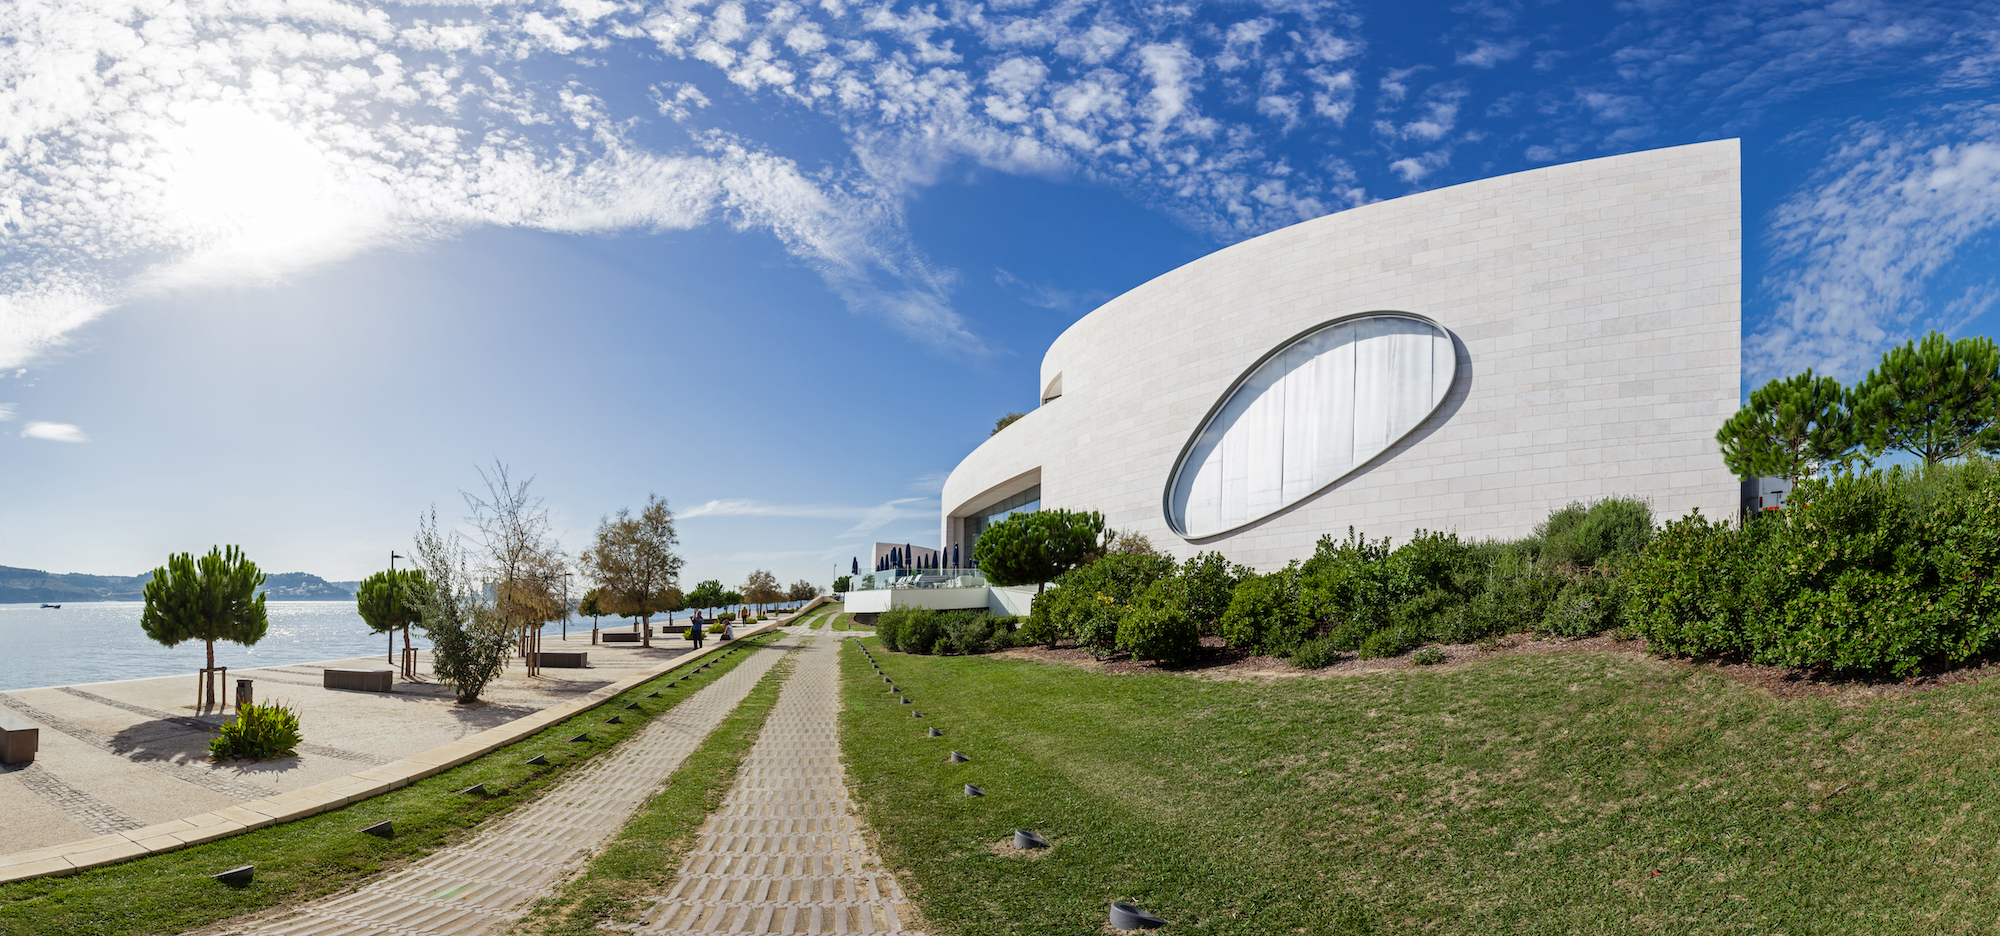 The Champalimaud foundation in Lisbon